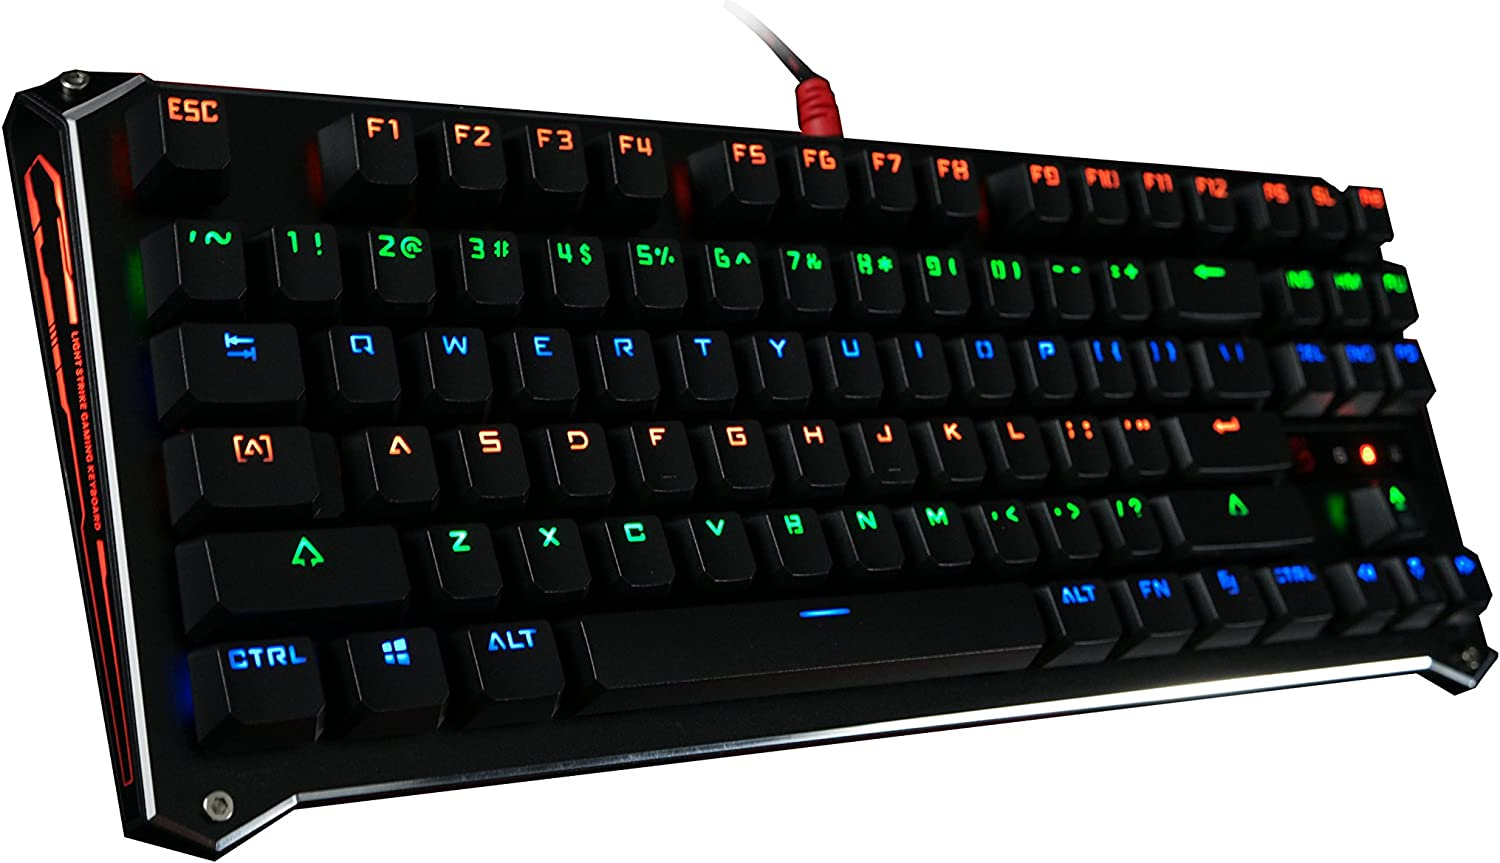 B830 Light Strike Compact Optical Gaming Keyboard (Tactile & Clicky) - Faster Than Mechanical - 0.2ms Key Response, 1:1 Raw Input, Fully Programmable - Neon LED Backlit [LK Blue Switch]